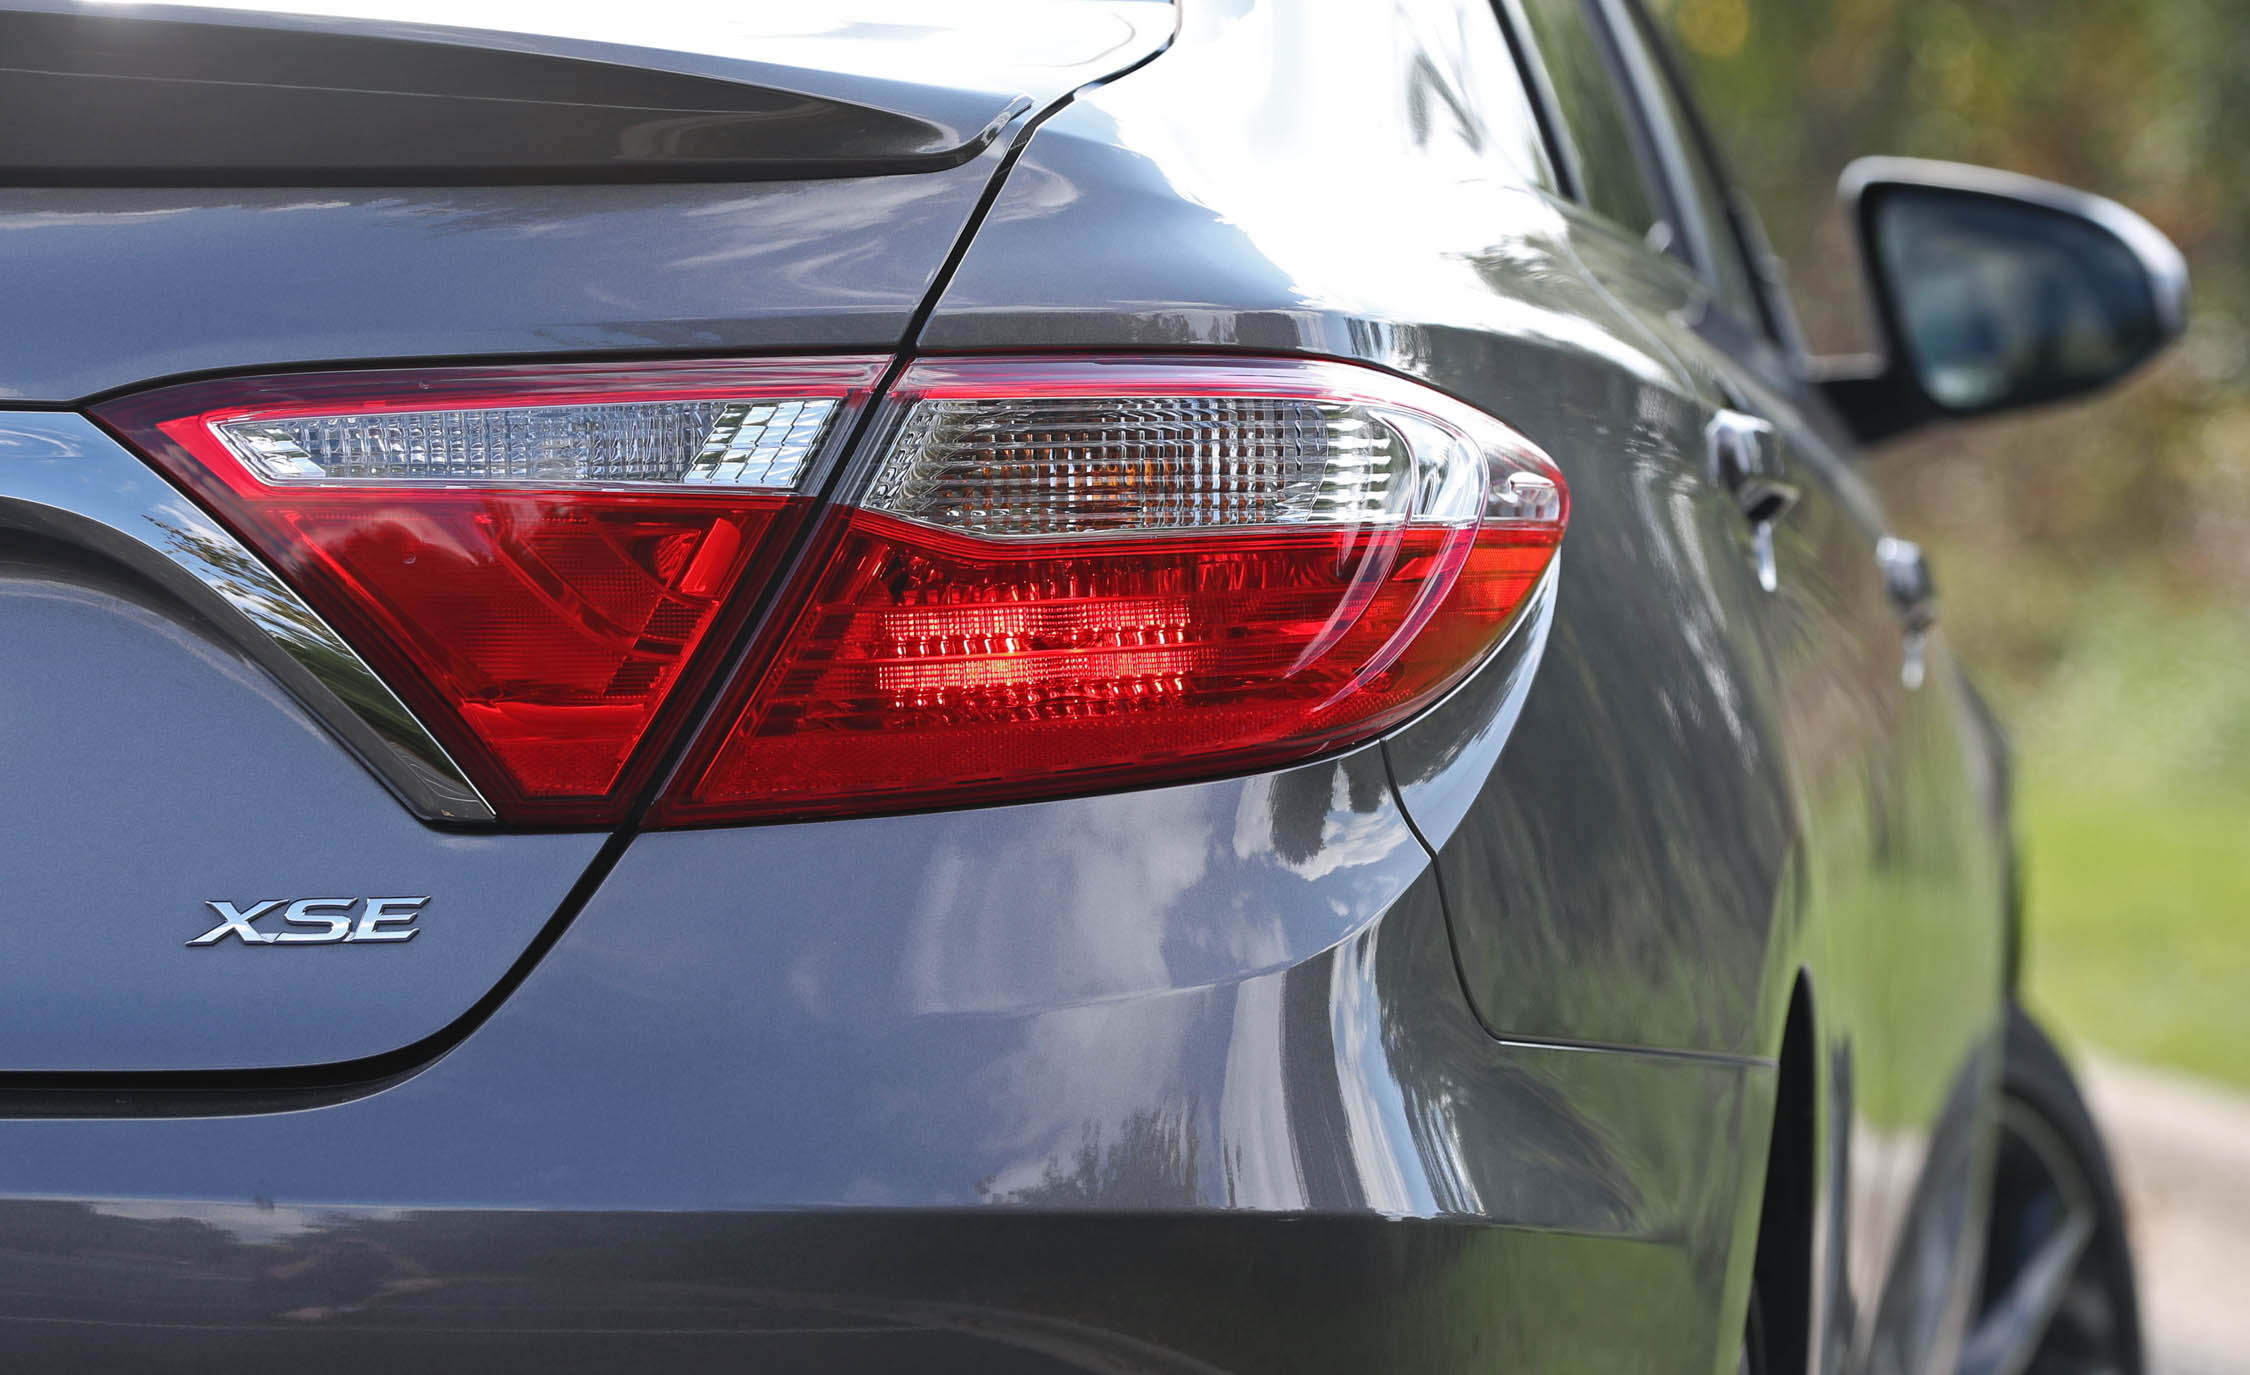 2017 Toyota Camry Exterior View Taillight (Photo 13 of 37)